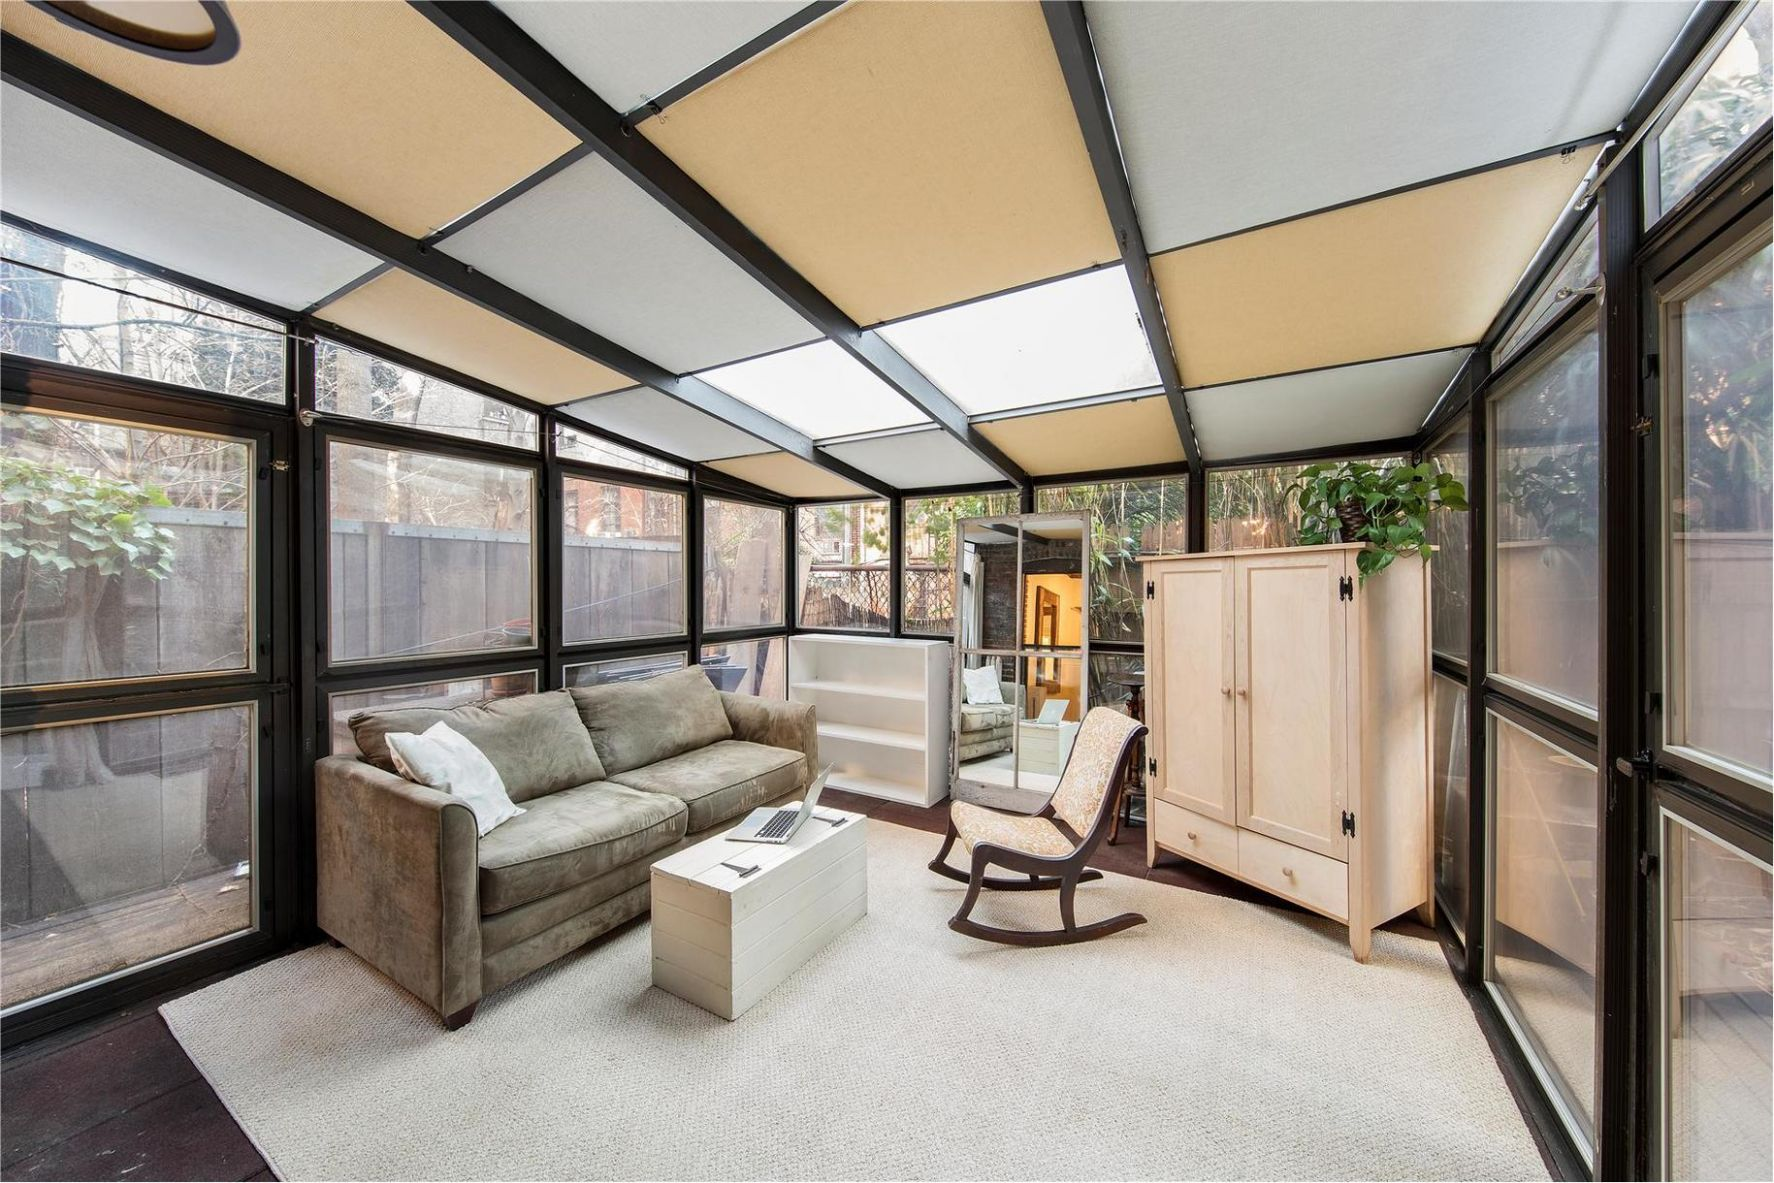 With a Cool Renovation and a Sunroom, This Tiny East Village Home ...